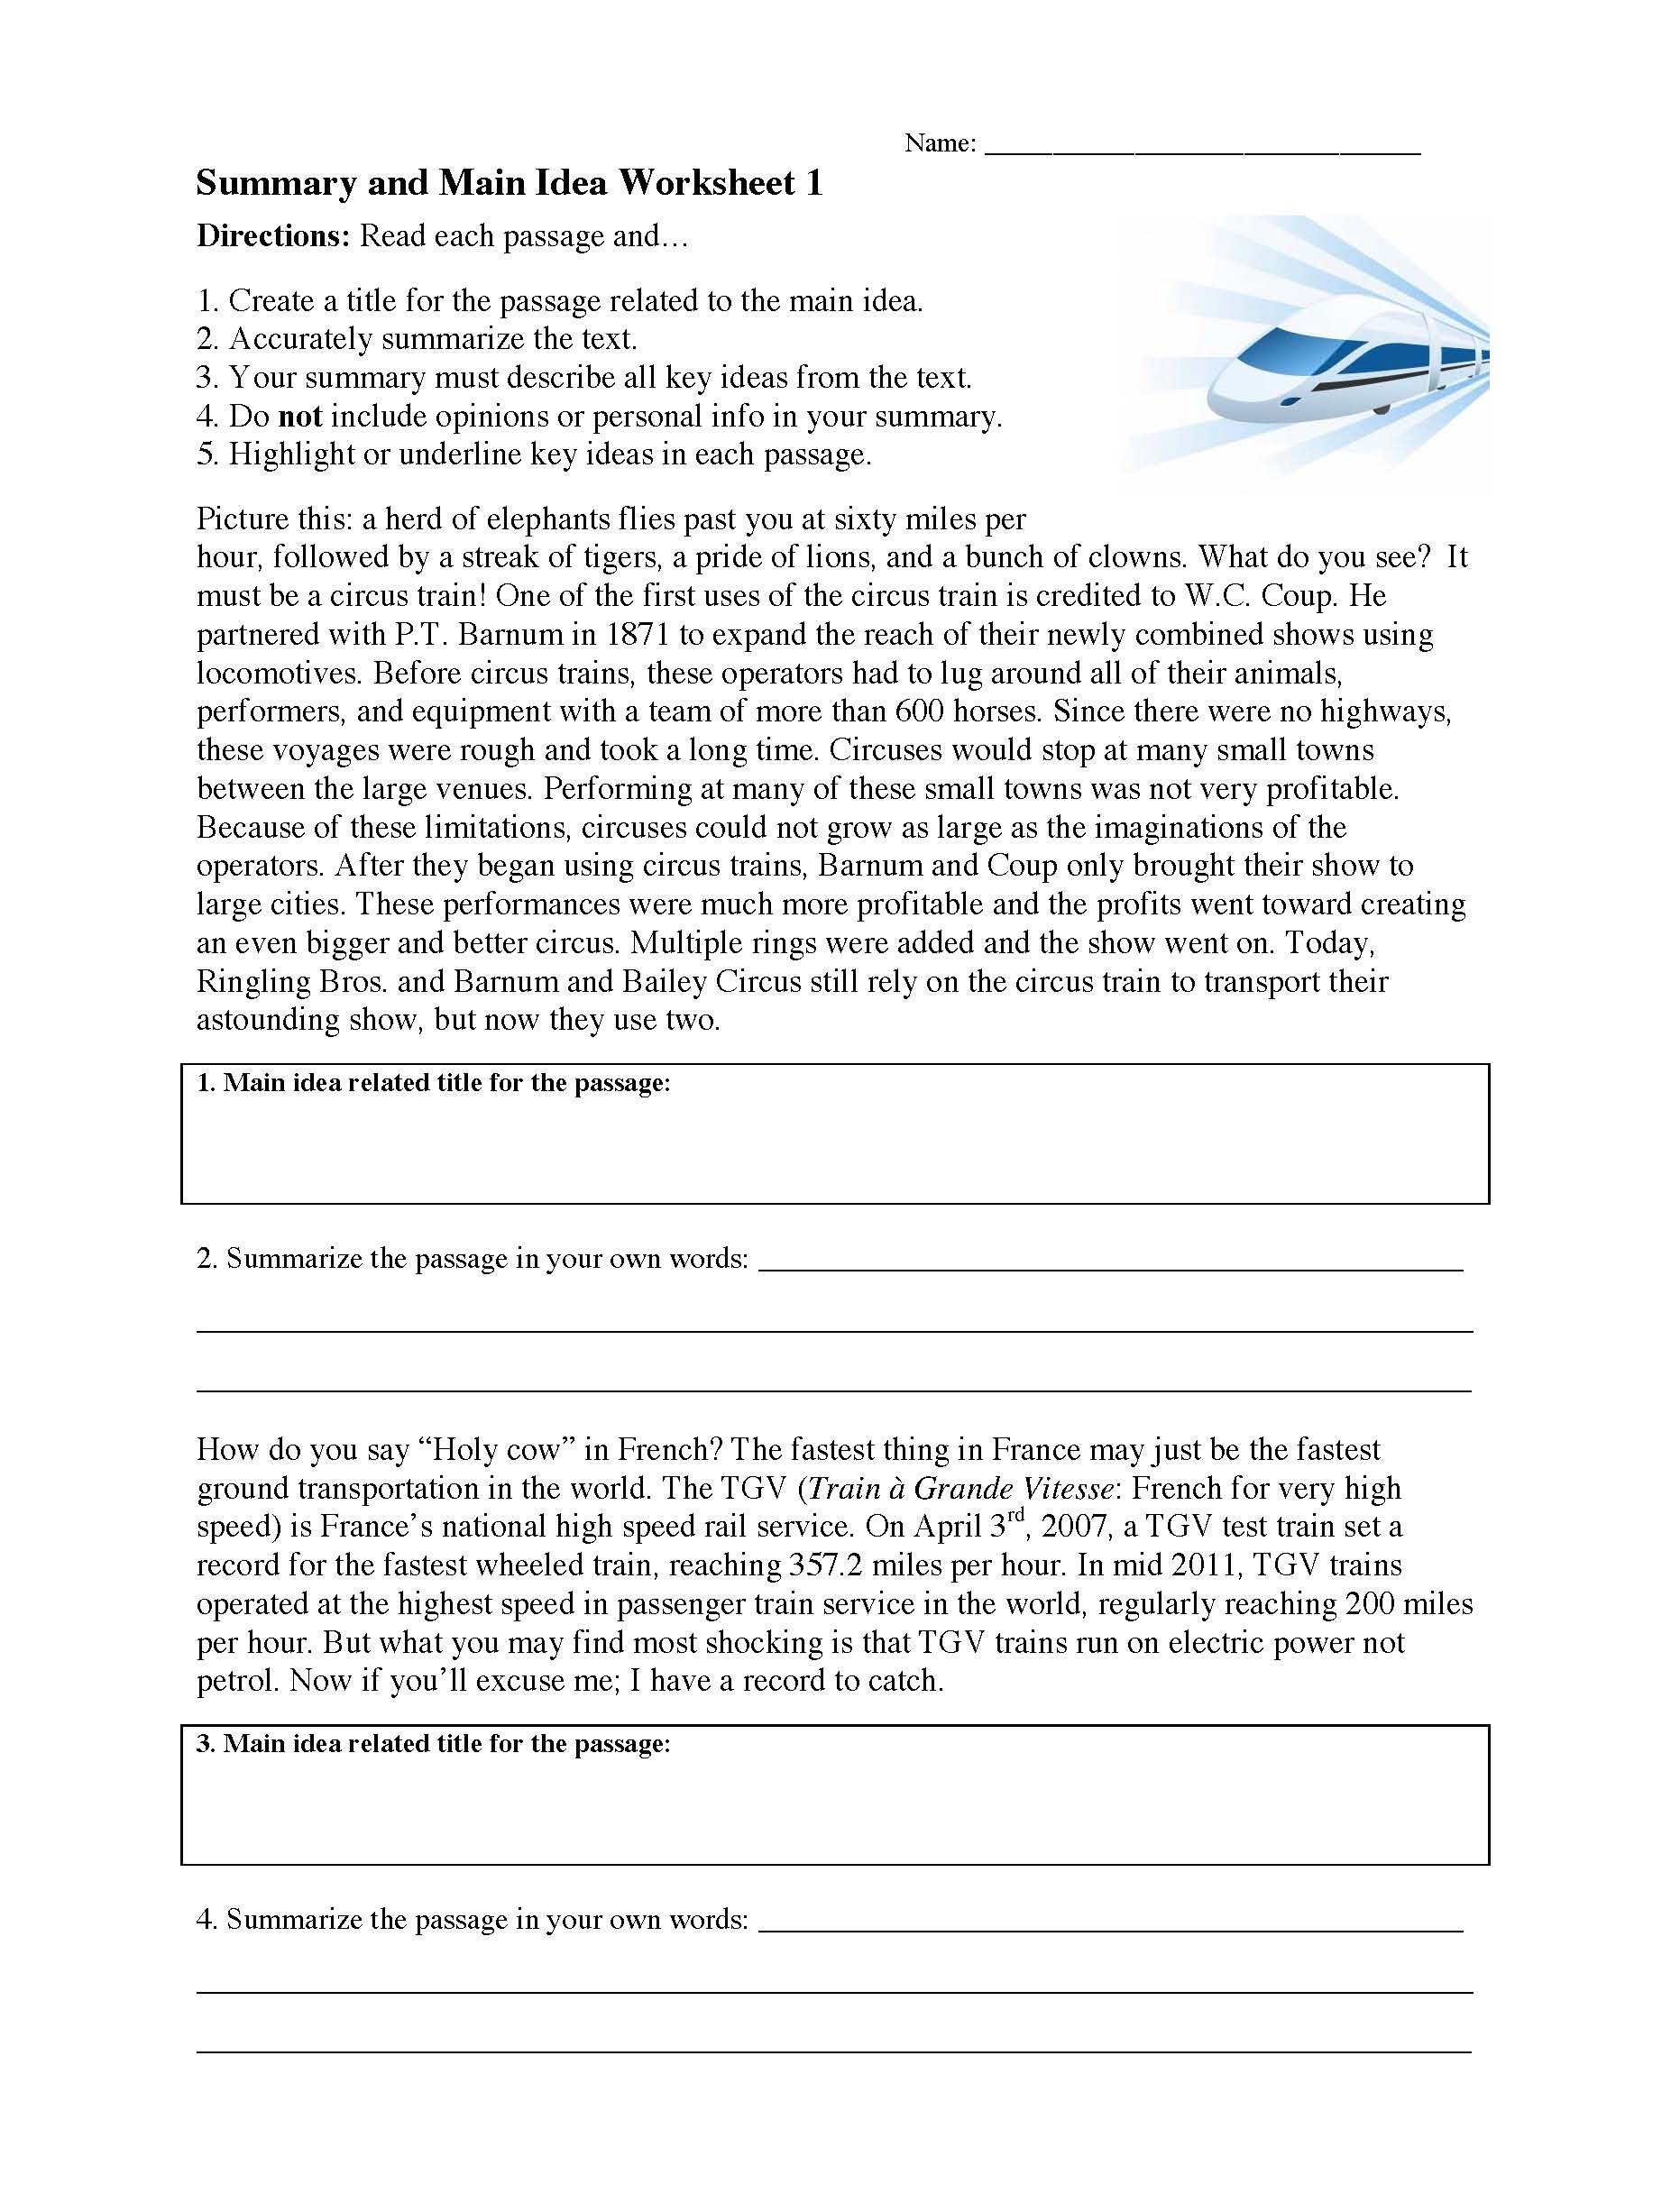 Finding The Main Idea Worksheets With Answers 3rd Grade